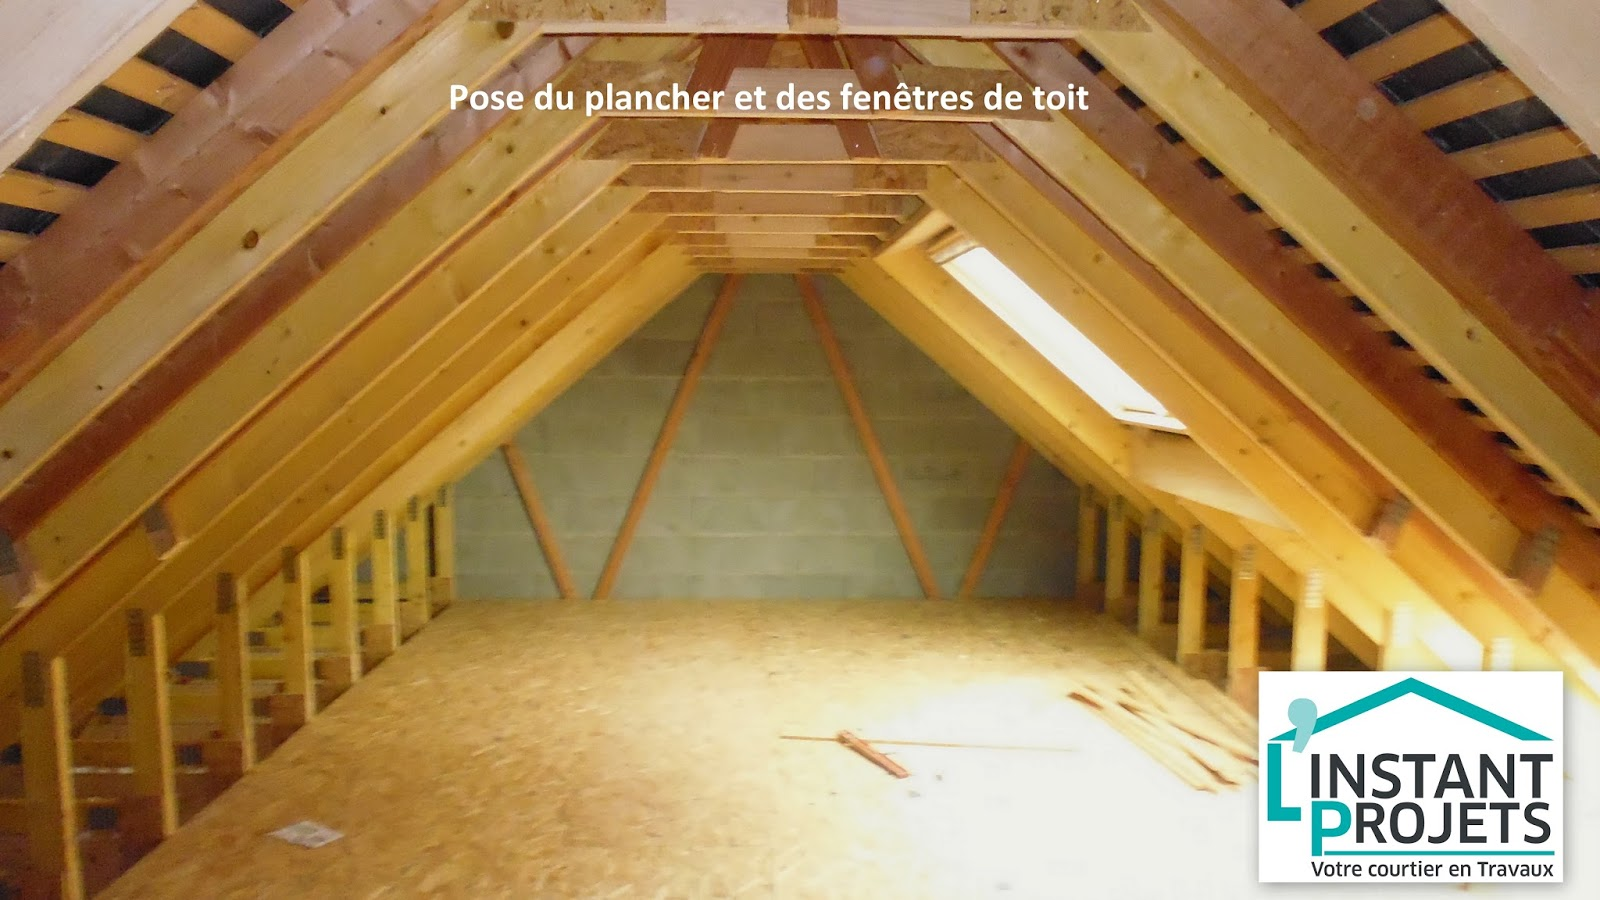 Cr ation de combles am nageables saint joachim l 39 instant projets for Plancher combles amenageables